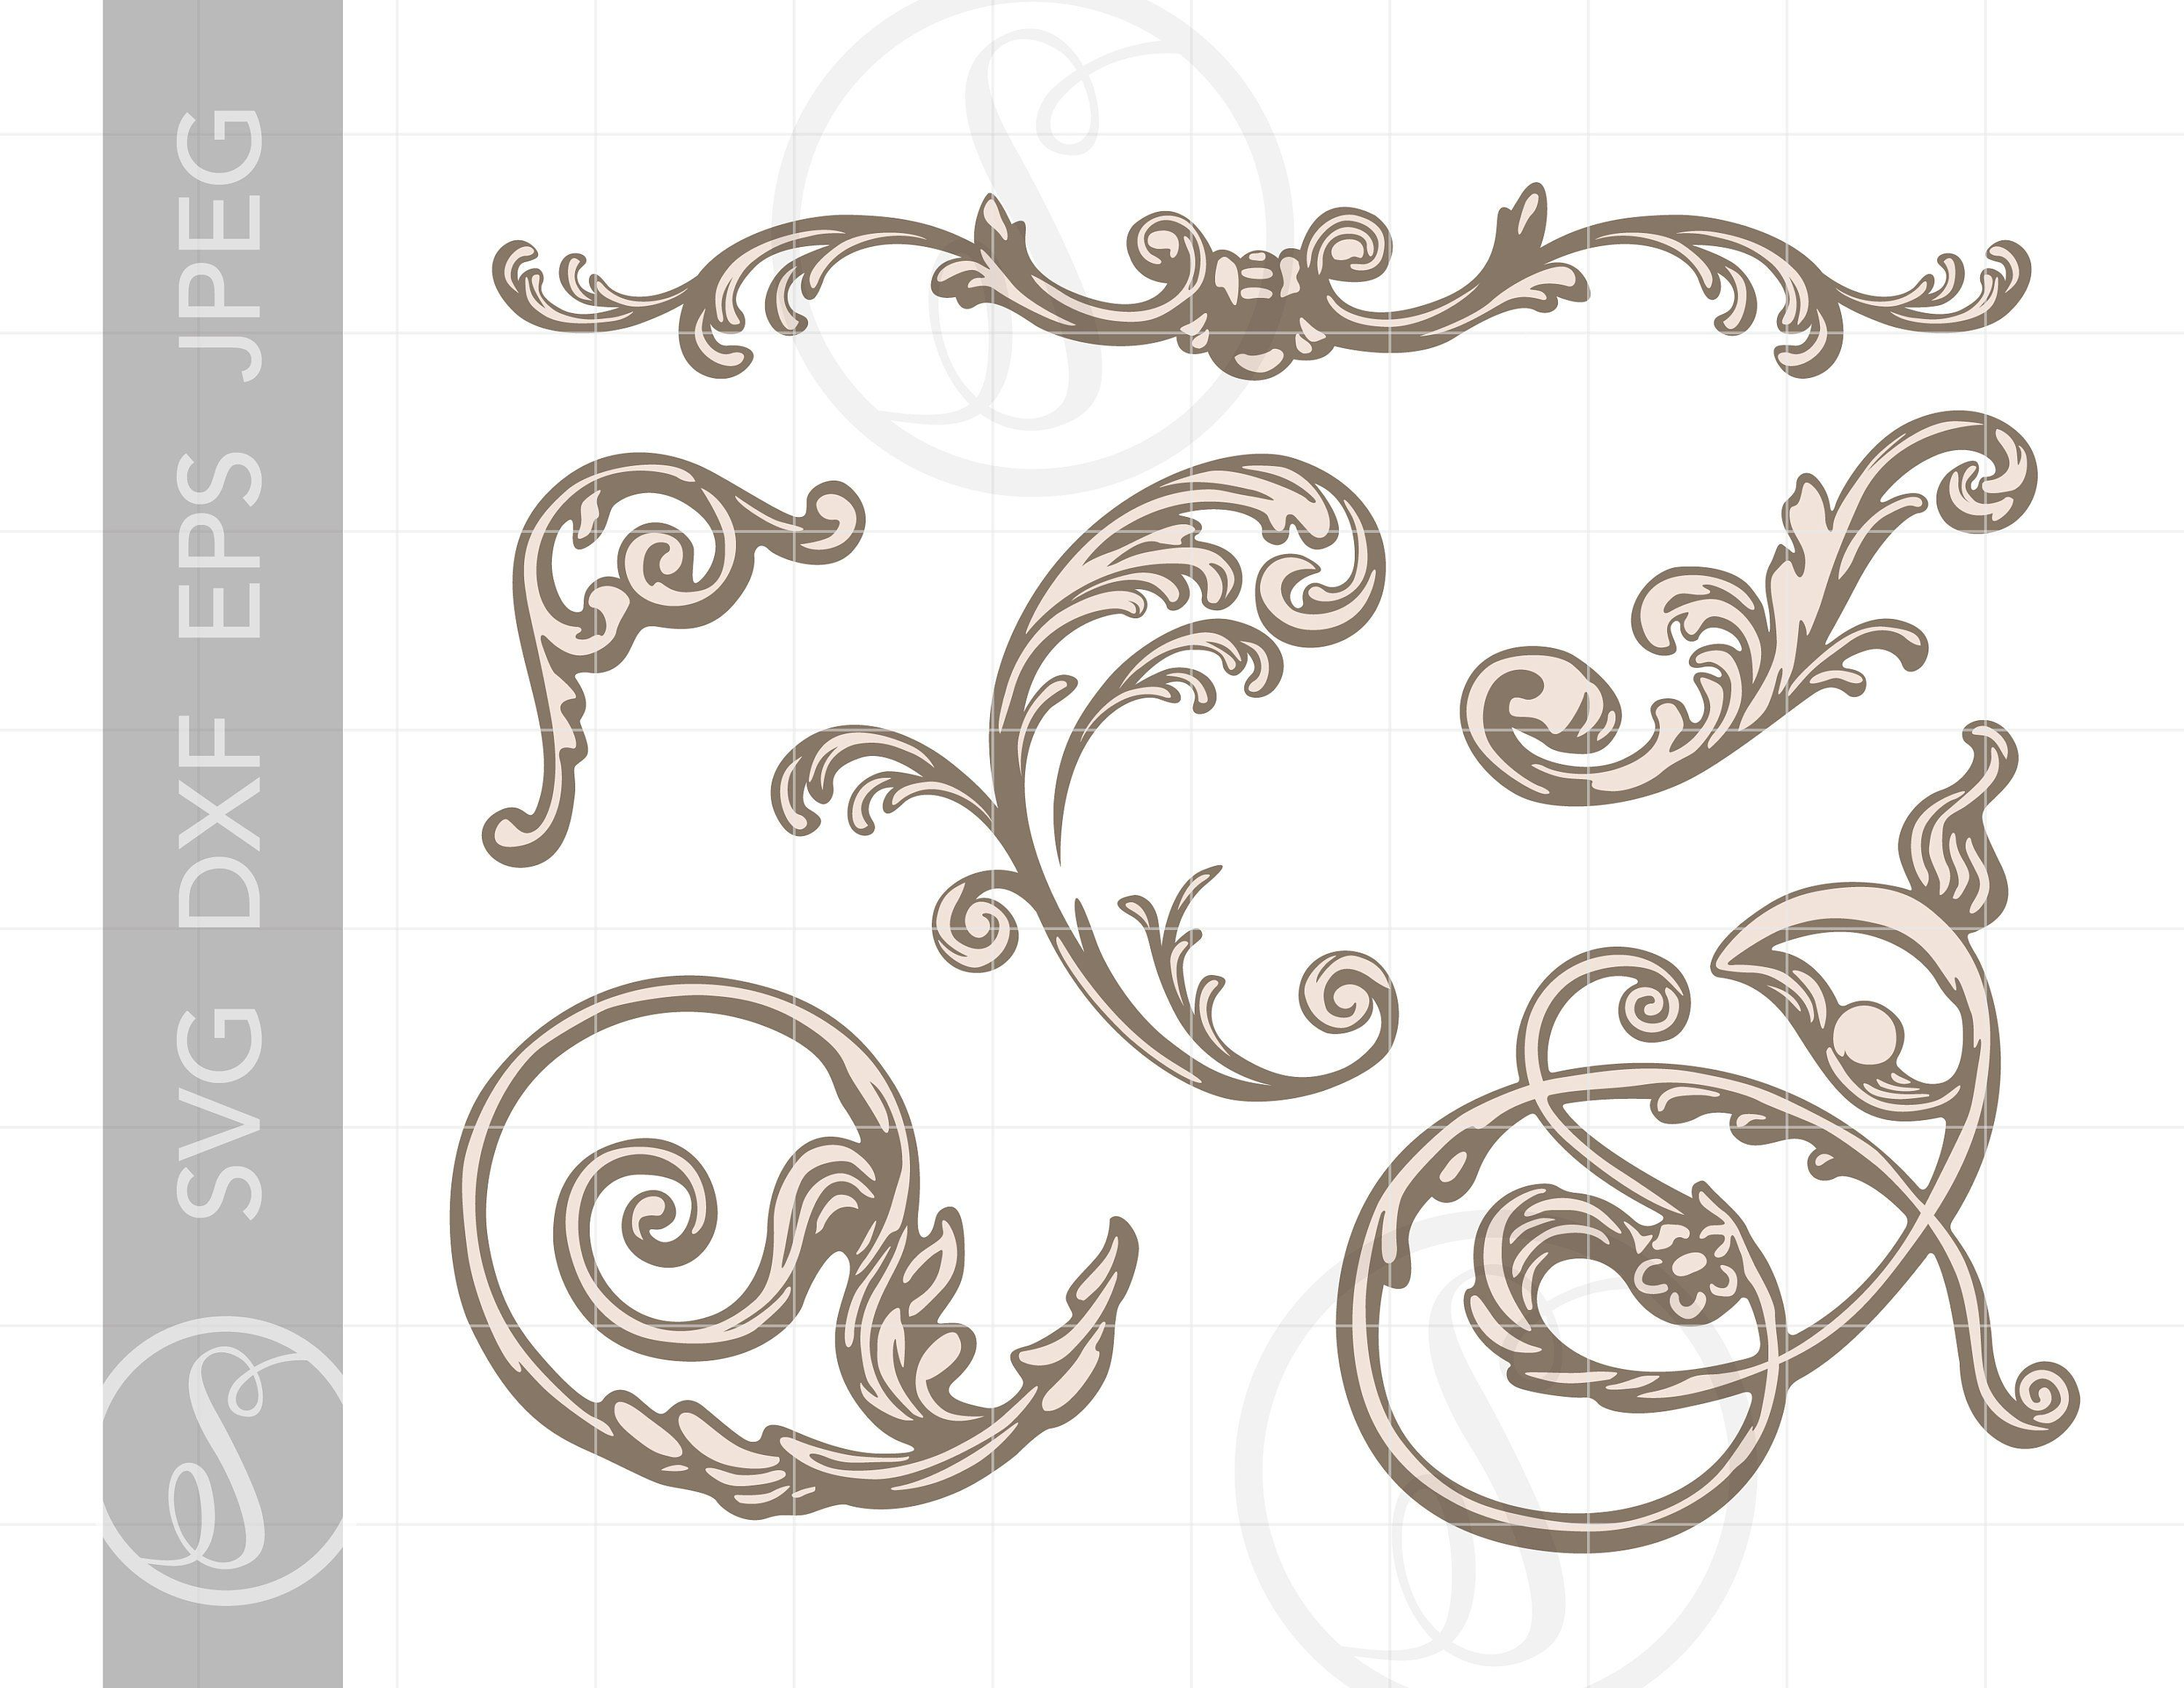 Victorian Design Ornaments SVG Clip Art Dxf Eps Jpeg.